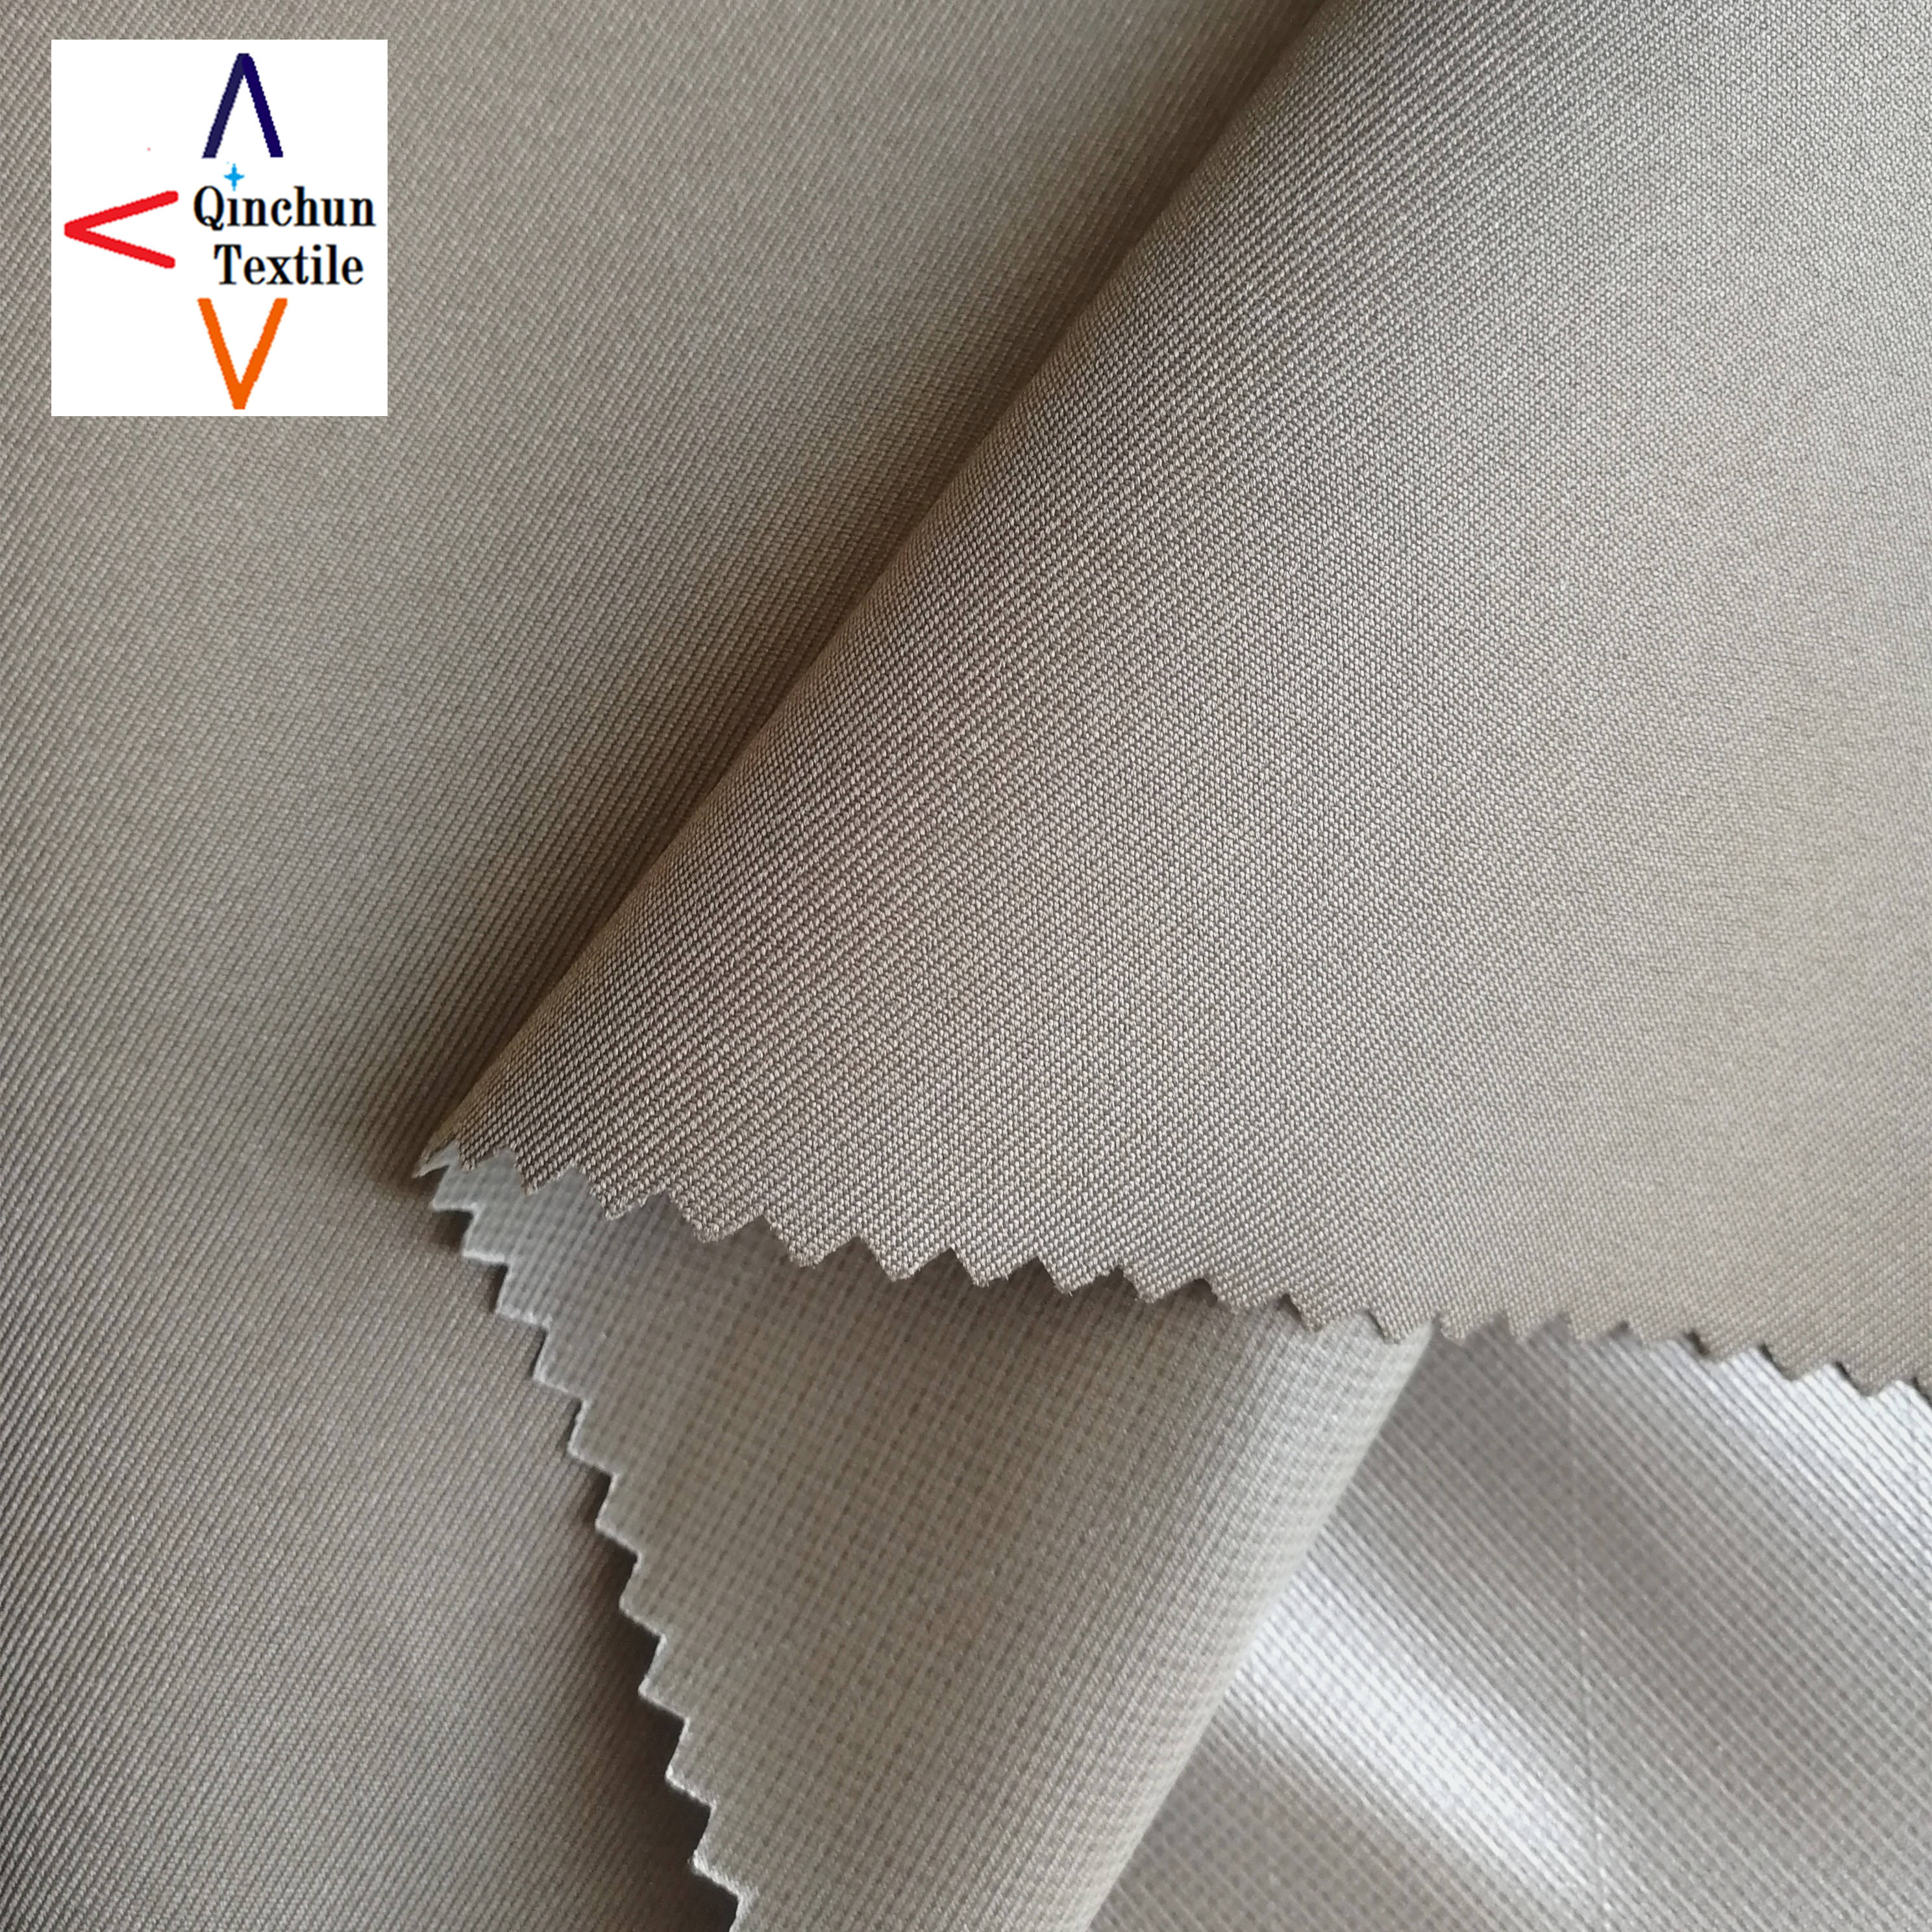 Electric conductive polyester twill gabardine fabric for doctor's coat